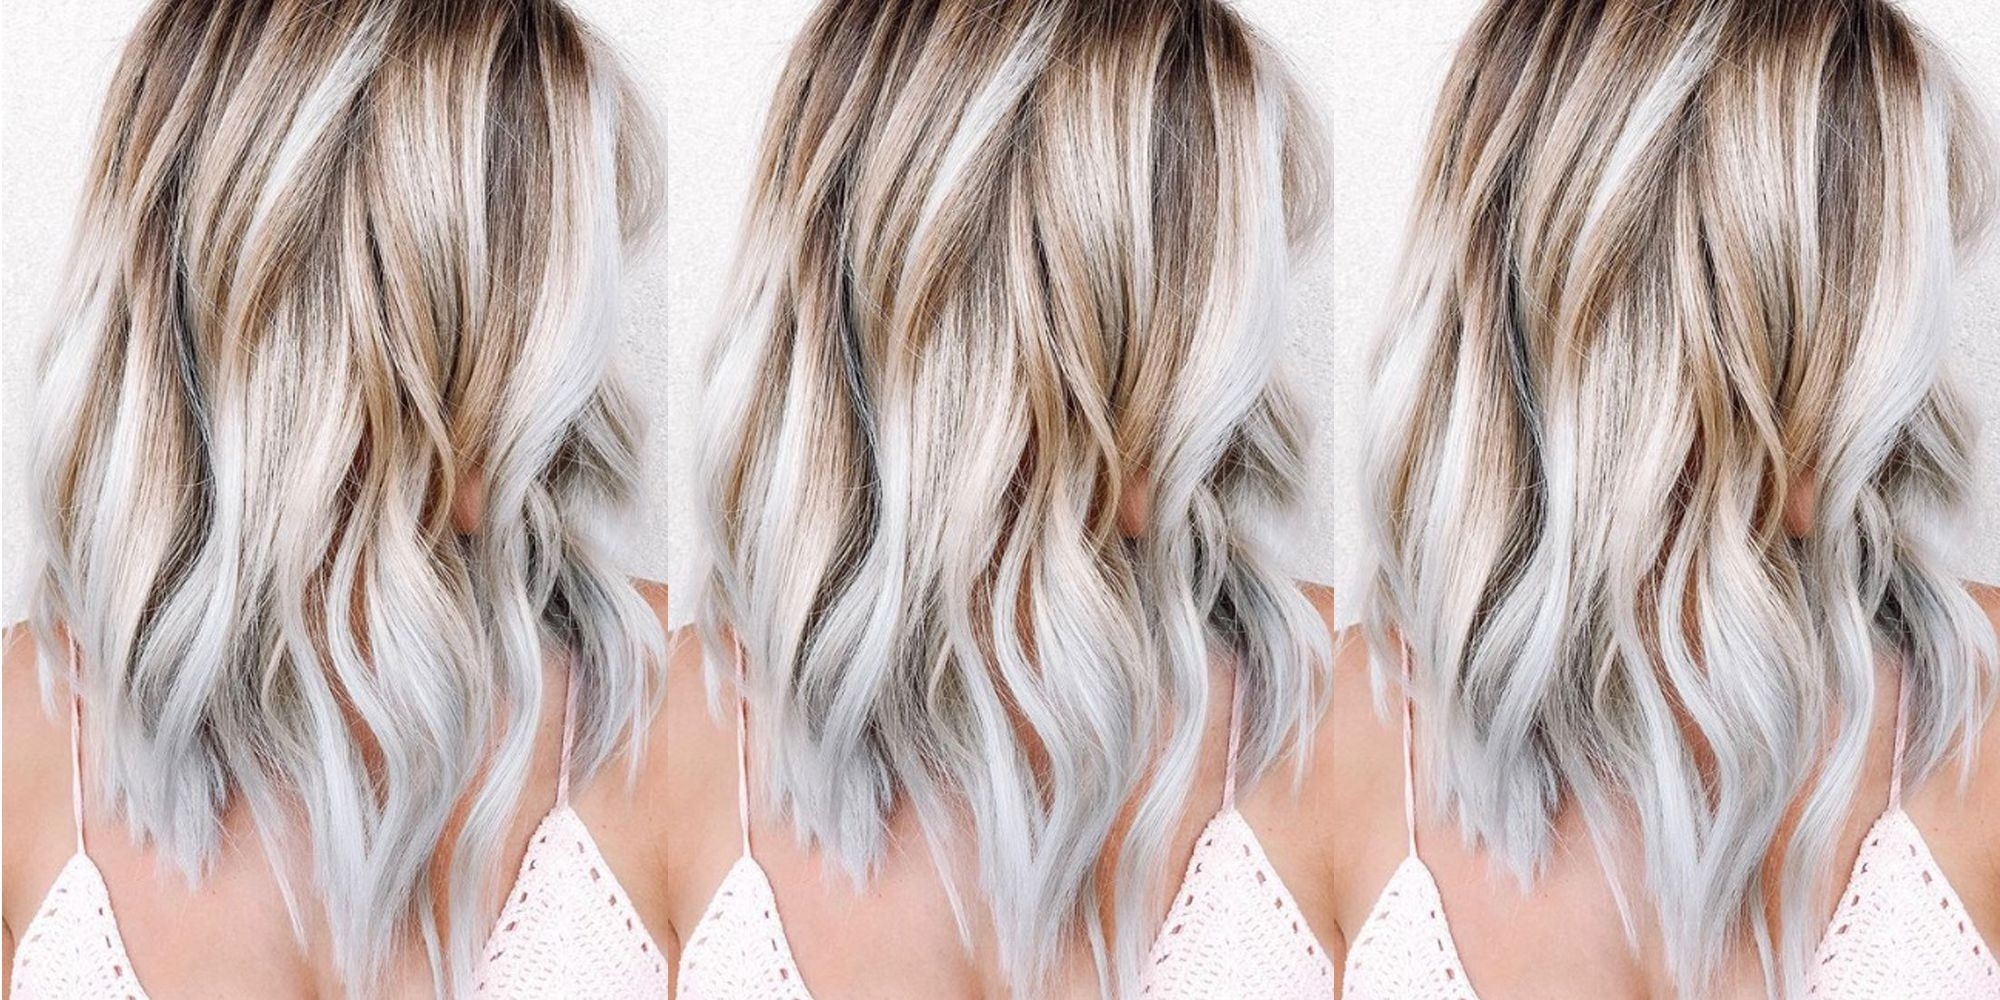 7 Blonde Hair Trends For Summer 2018 – New Ways To Try Blonde Hair In Latest Dark Roots And Icy Cool Ends Blonde Hairstyles (Gallery 19 of 20)